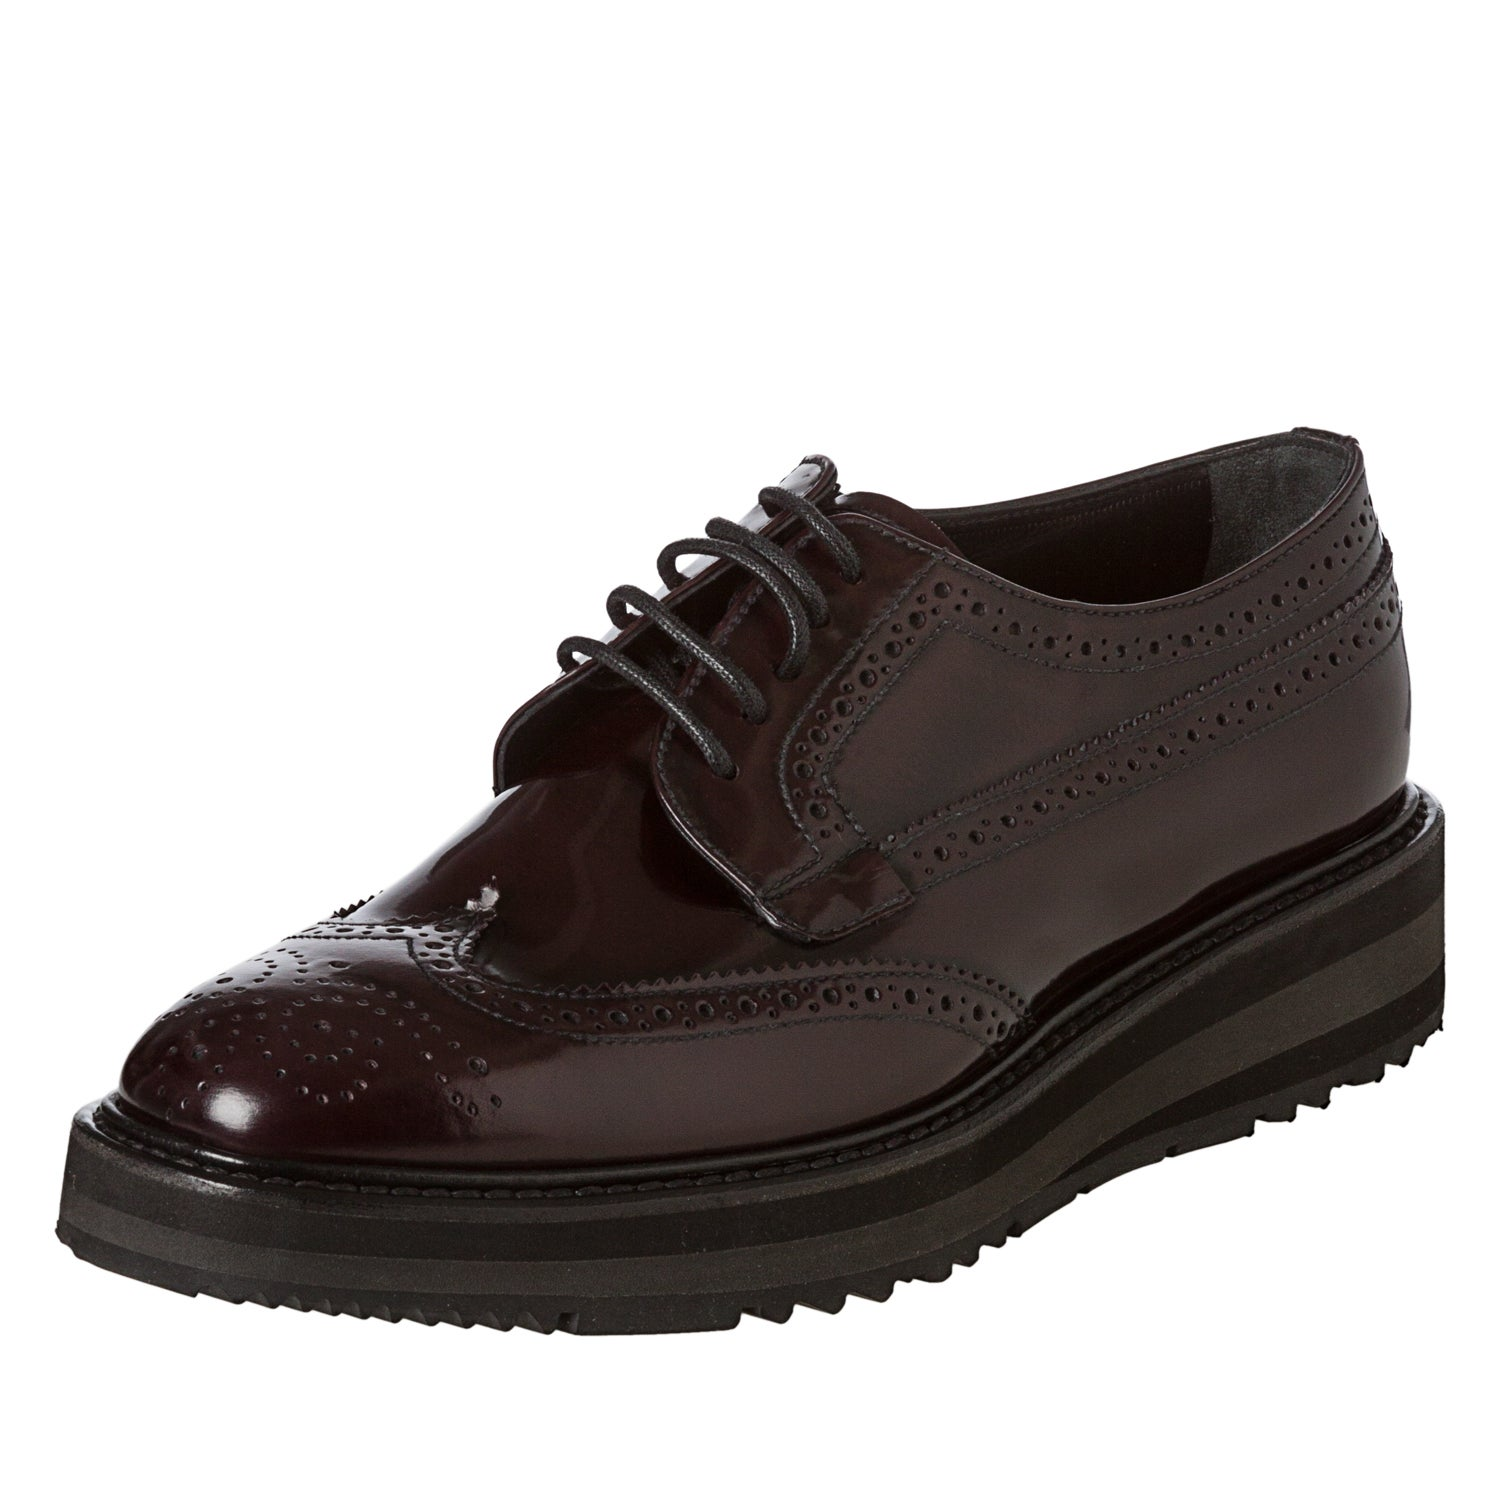 630474be Prada Women's 'Brogue' Burgundy Leather Platform Oxfords